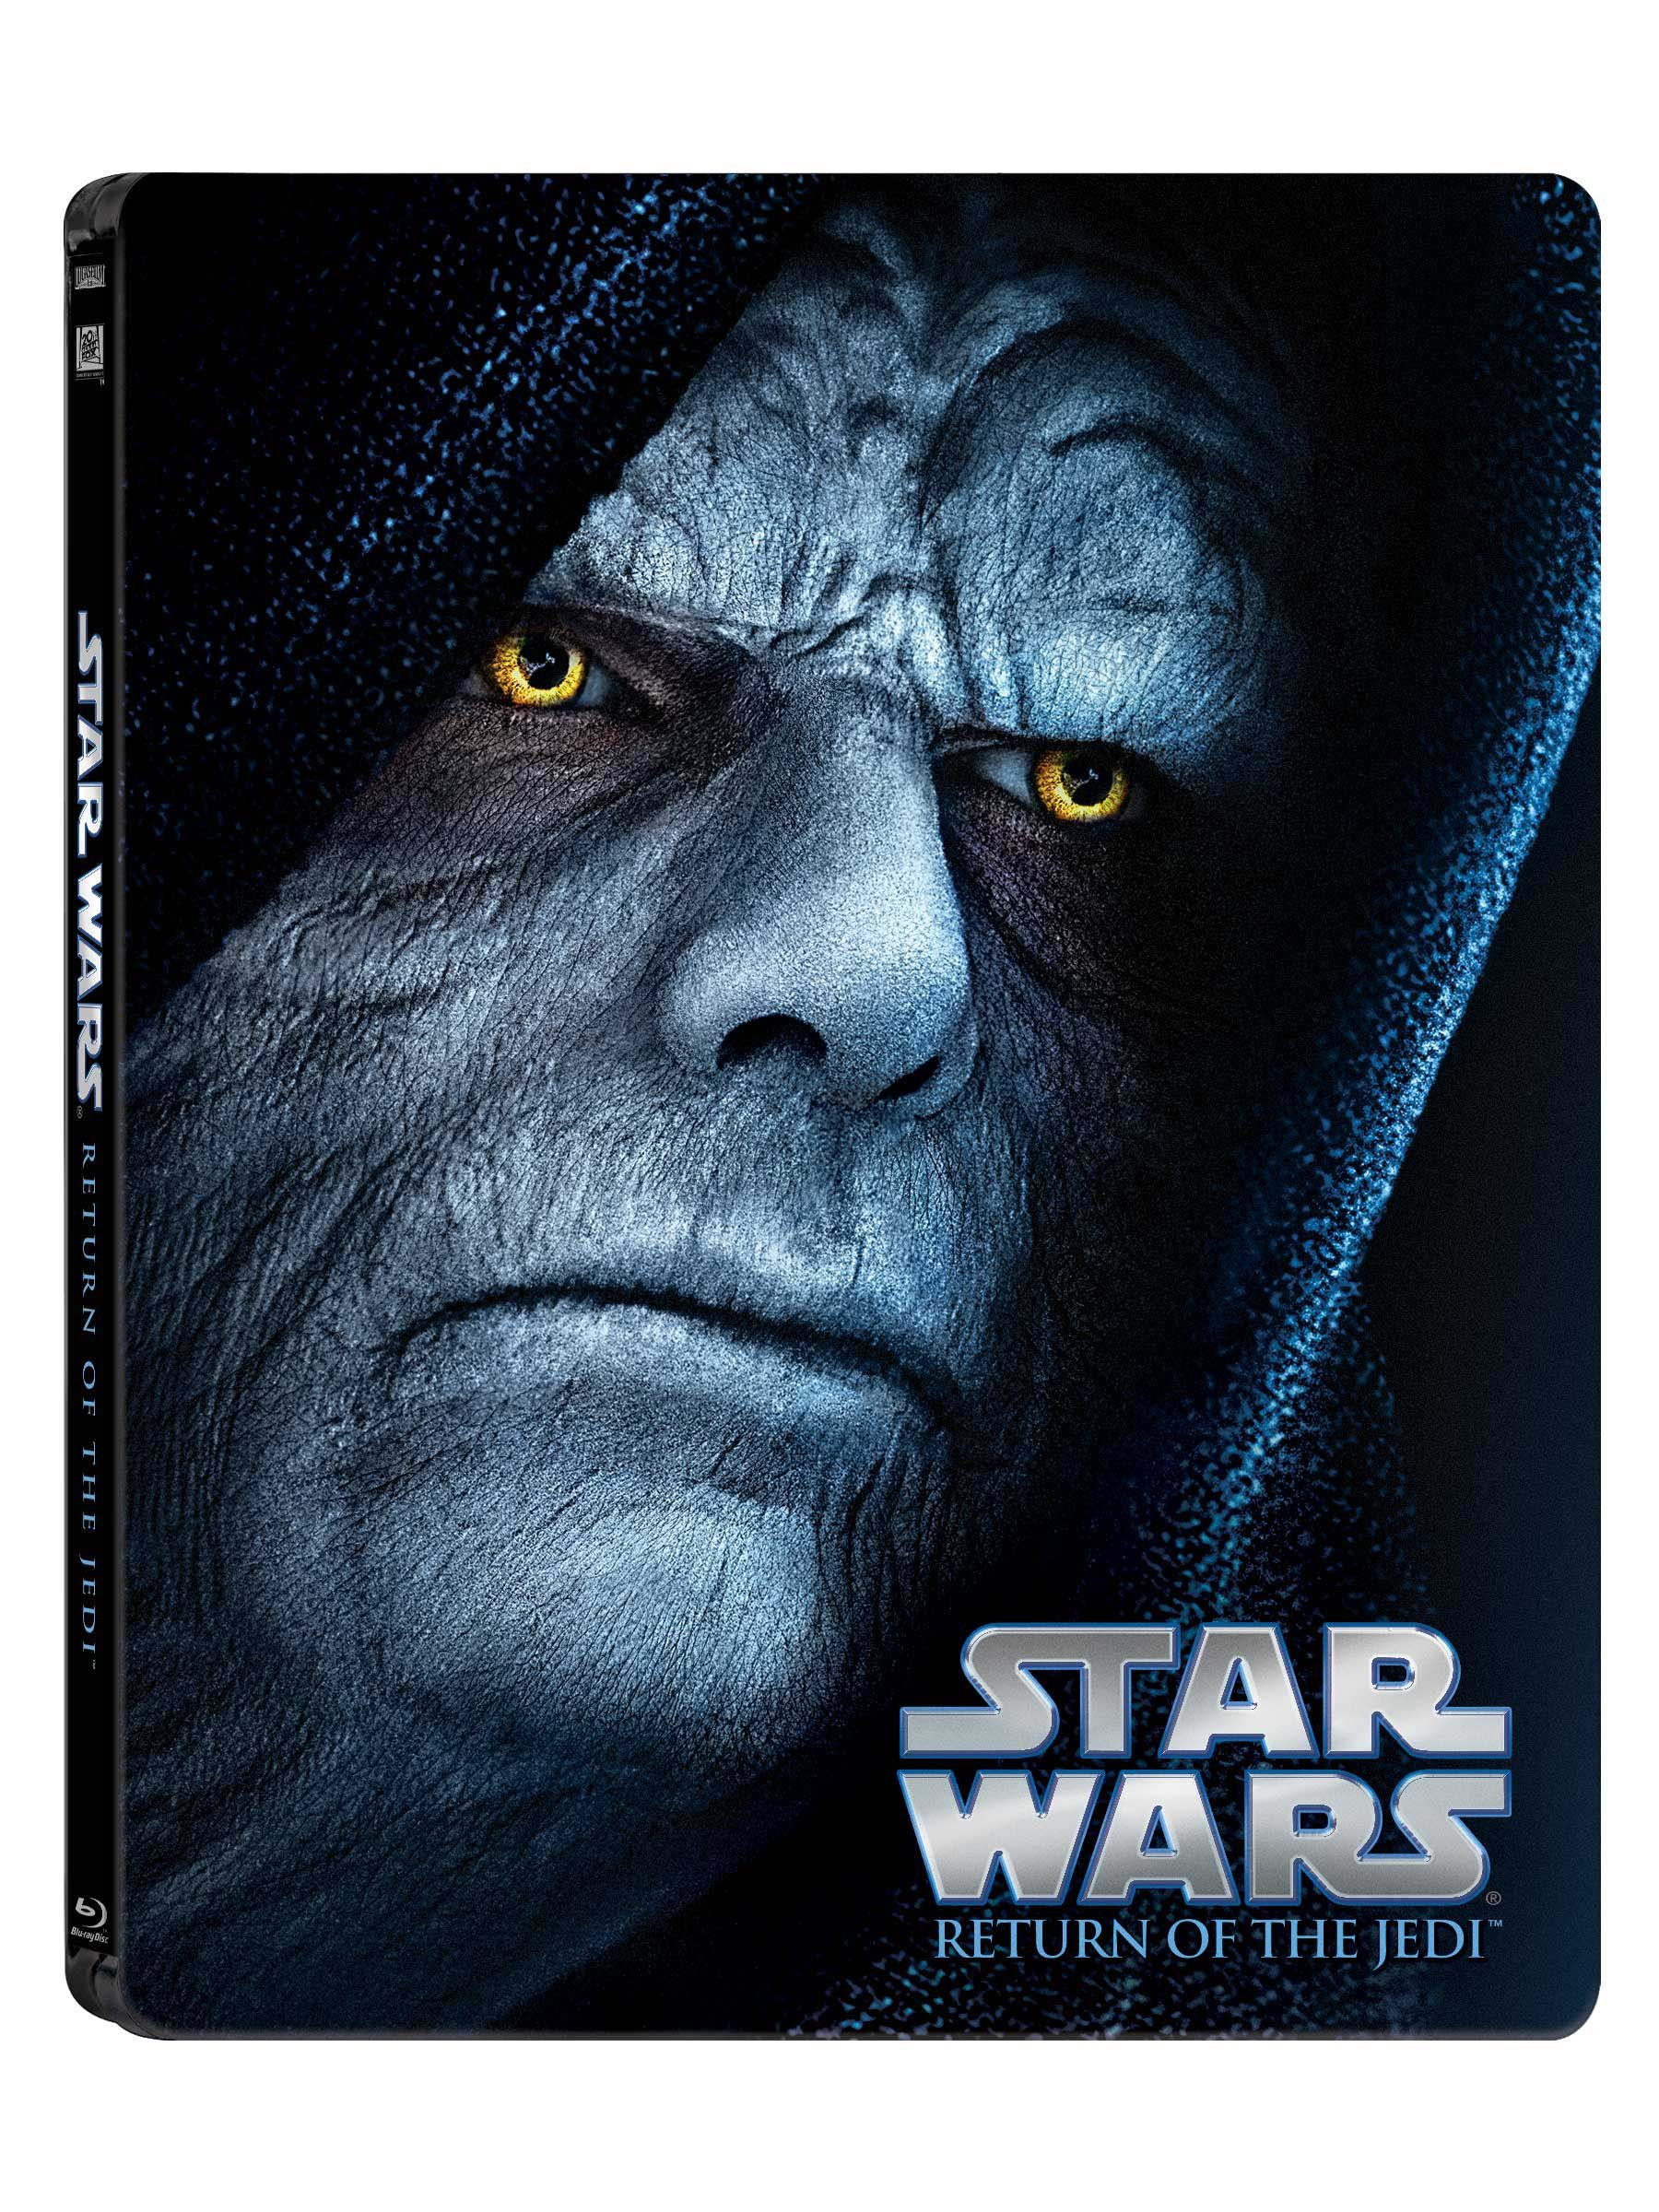 Blu-ray : Star Wars: Return of the Jedi (Steelbook, Dubbed, , Widescreen, Digital Theater System)